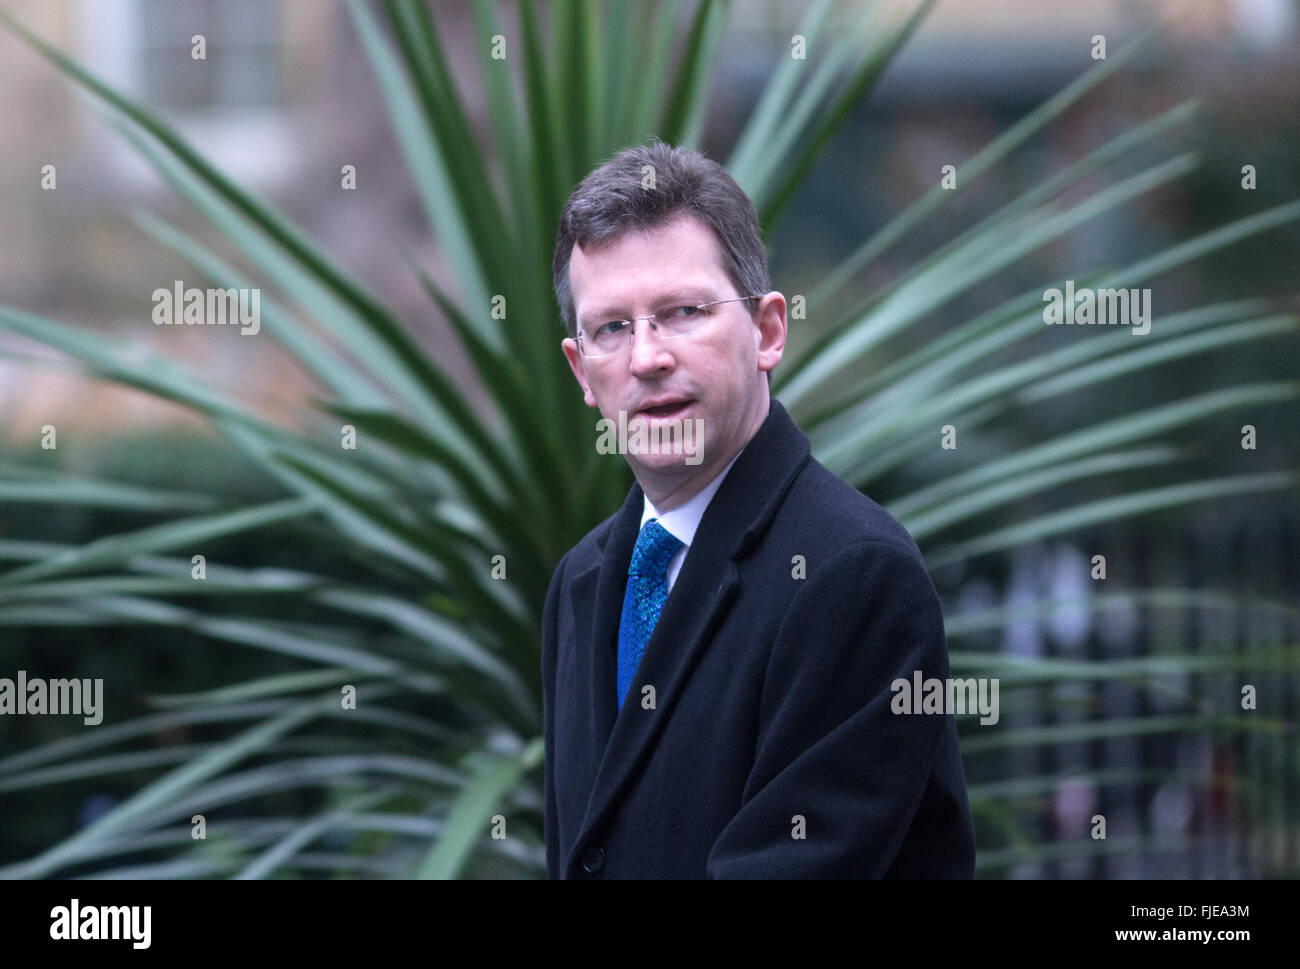 Attorney General Jeremy Wright QC arrives at Downing street for the weekly cabinet meeting - Stock Image